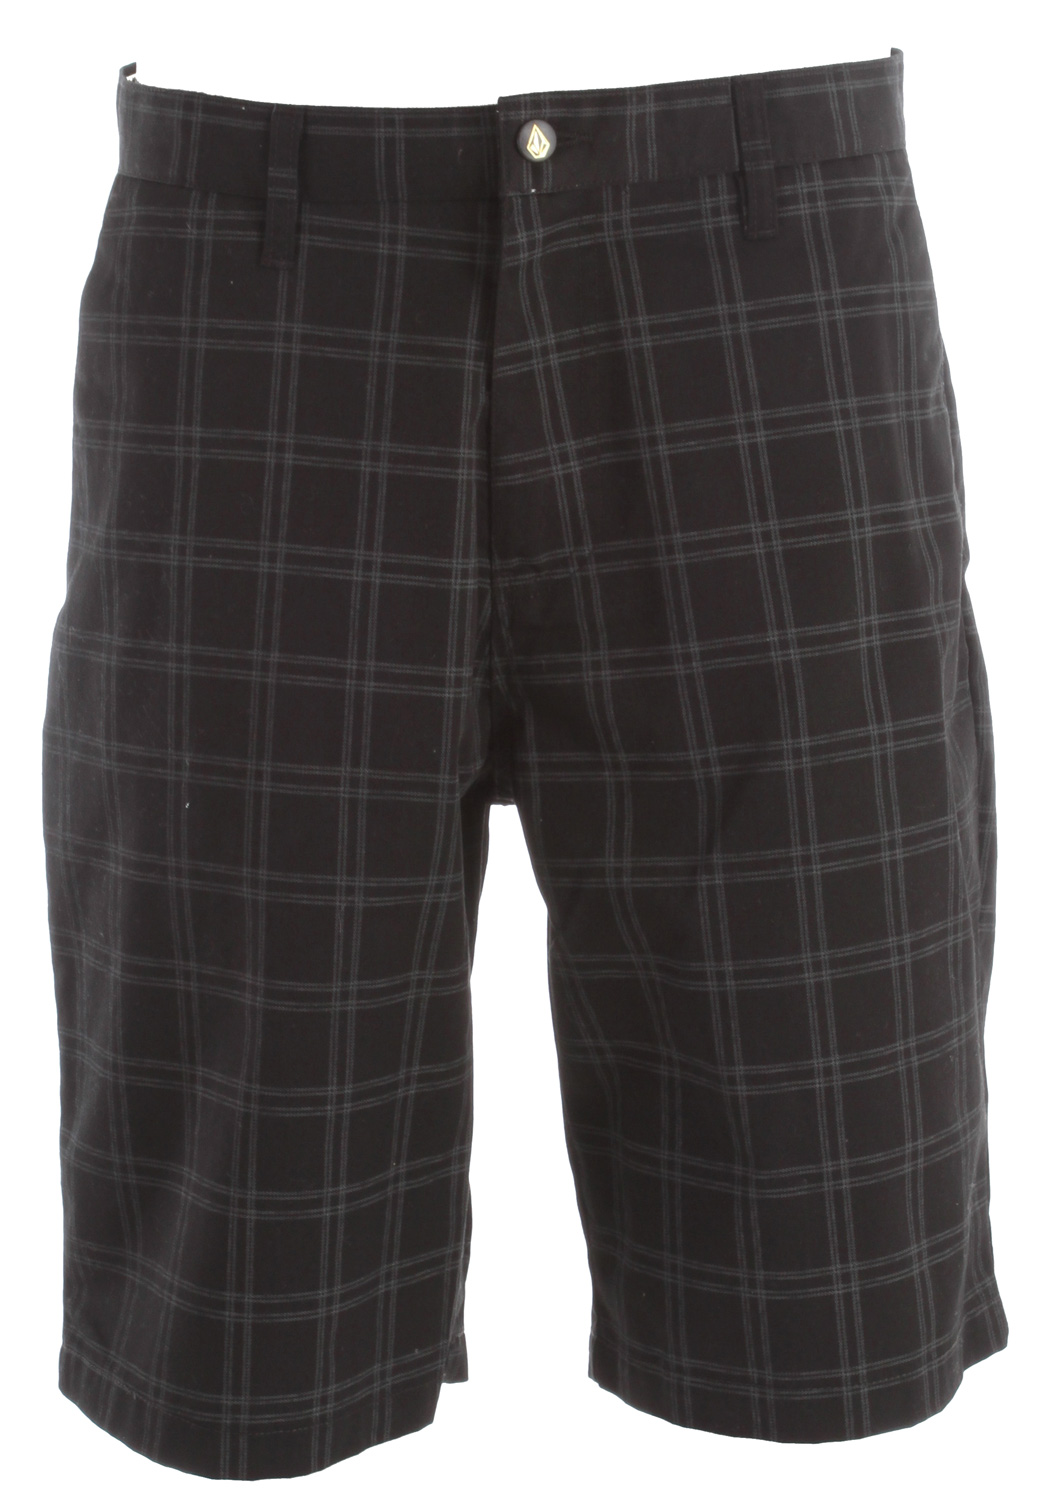 "Surf Frickin A these are the best frickin plaid shorts money can buy. All the classic elements are here, along with a 22"" outseam and relaxed fit just in case you want to throw out a quick skate sesh after school. 65% polyester / 35% cotton twill. - $33.95"